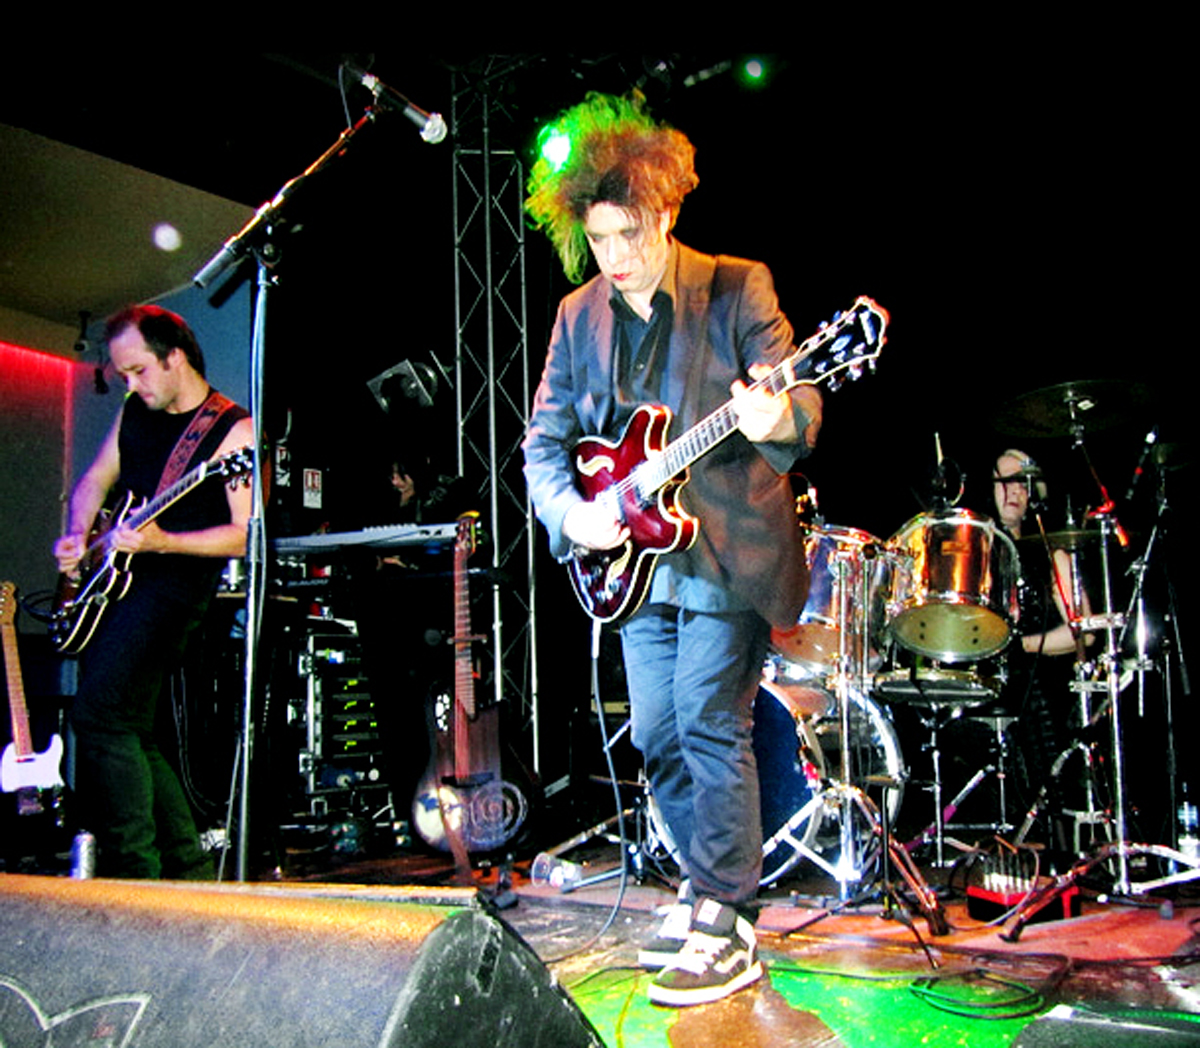 The Cureheads on stage